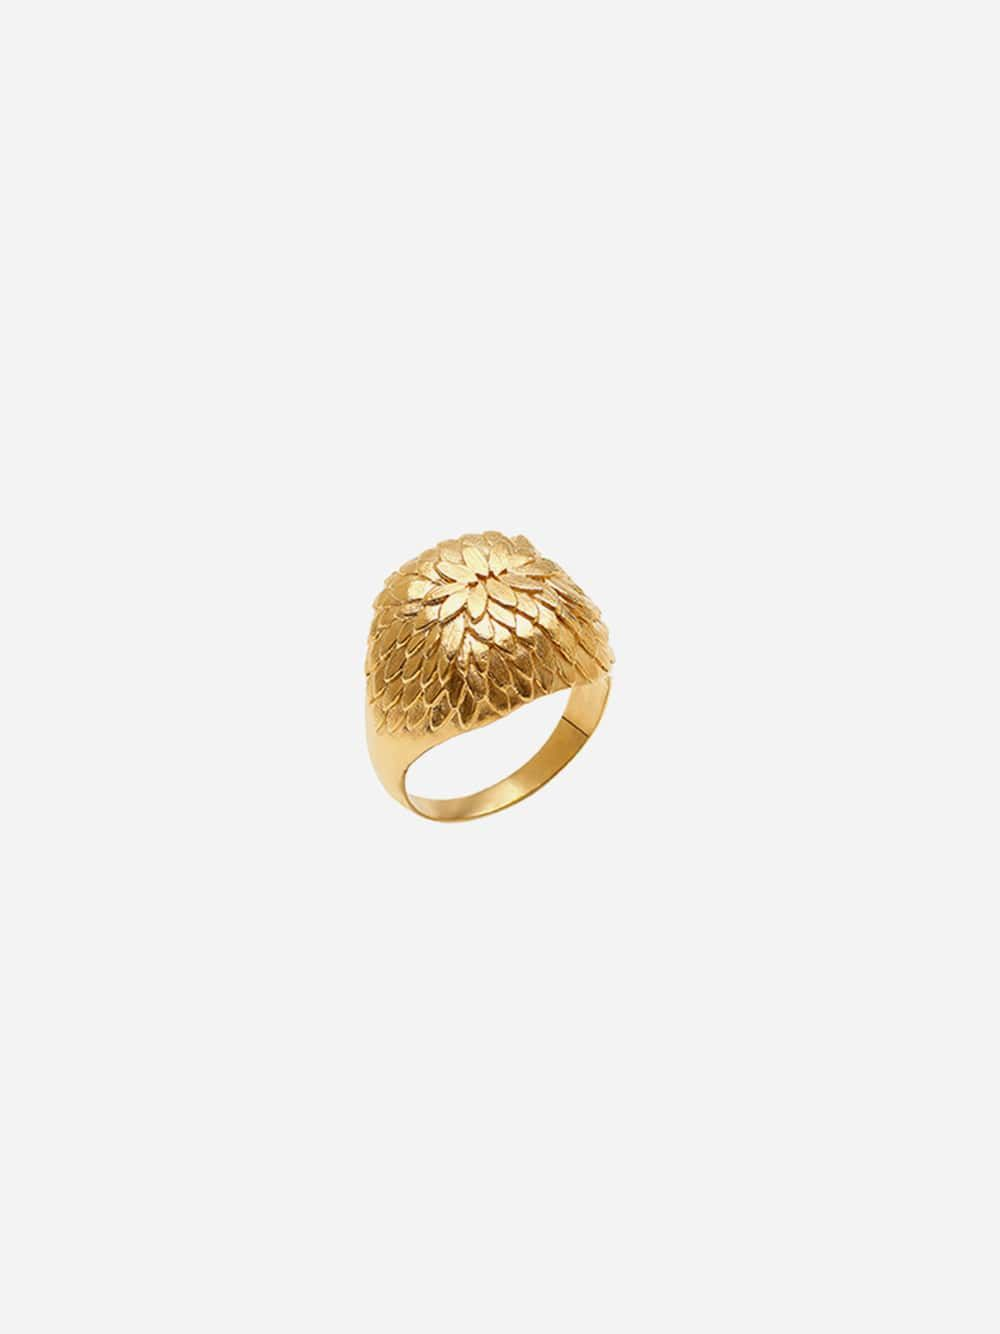 Water Lilly Petals Ring   Sopro